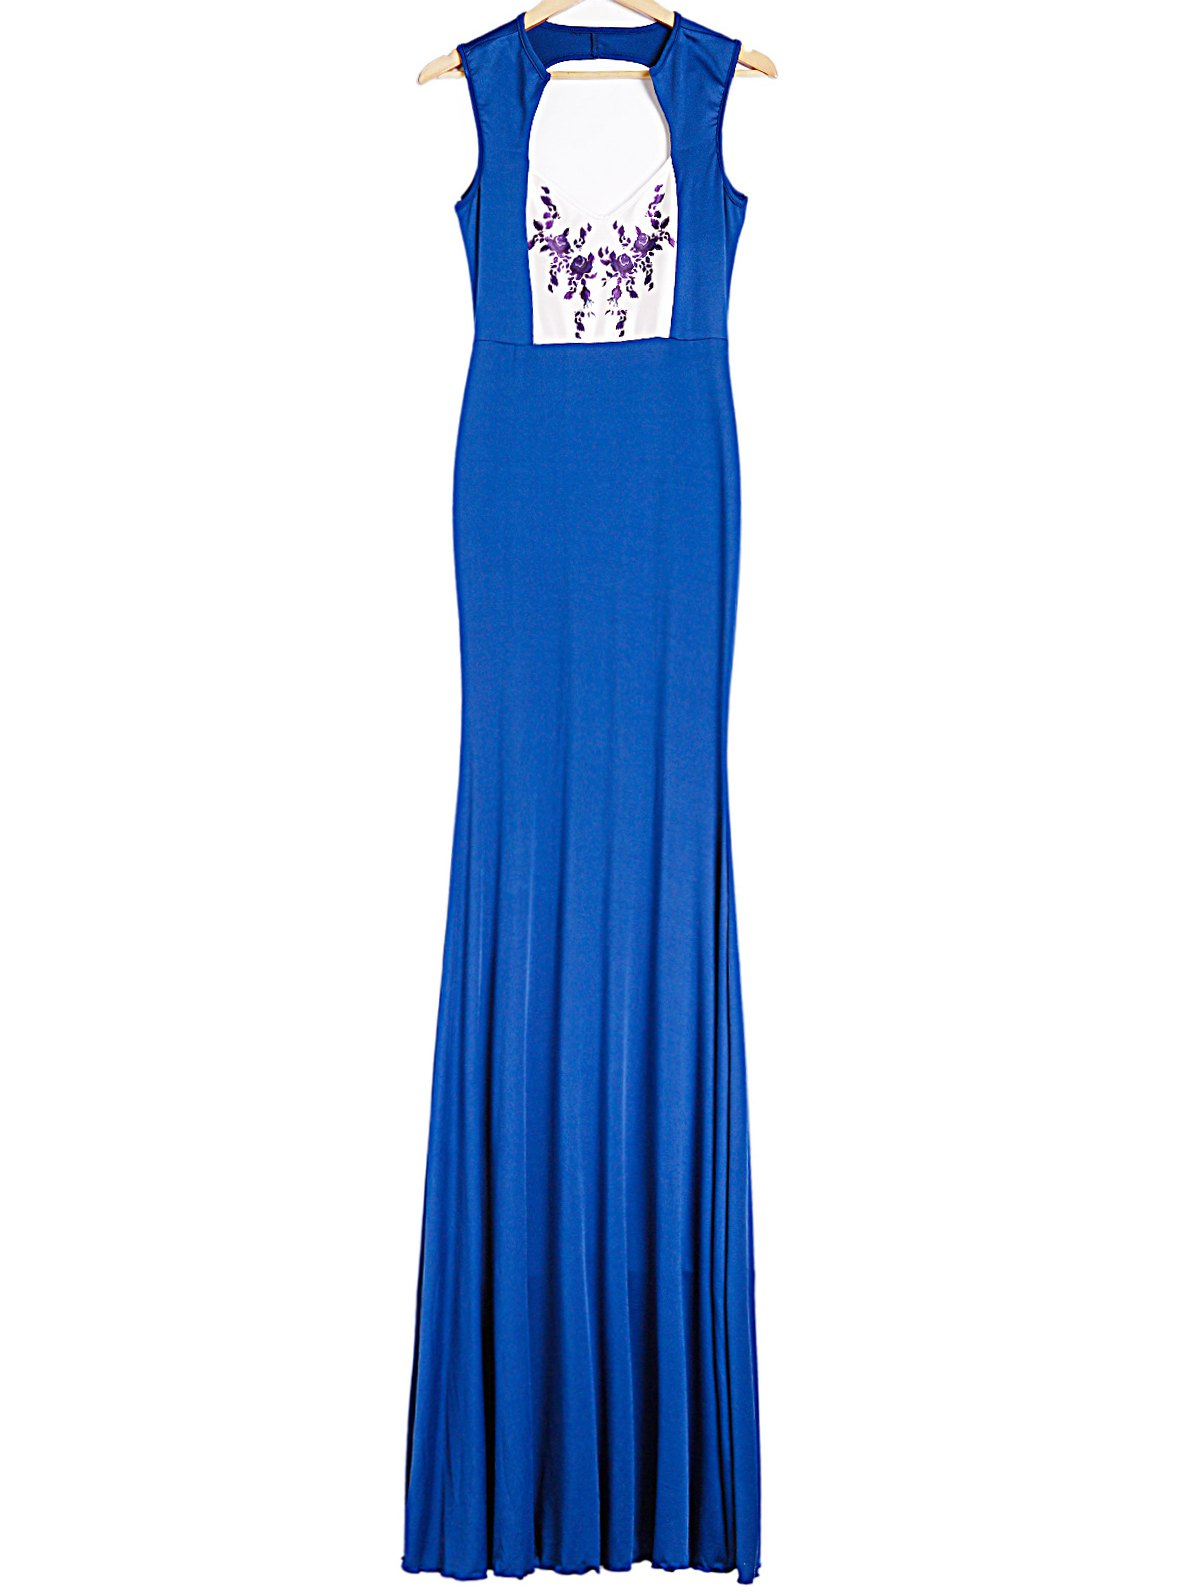 Plunging Neck Sleeveless Spliced Printed Backless Women's Dress